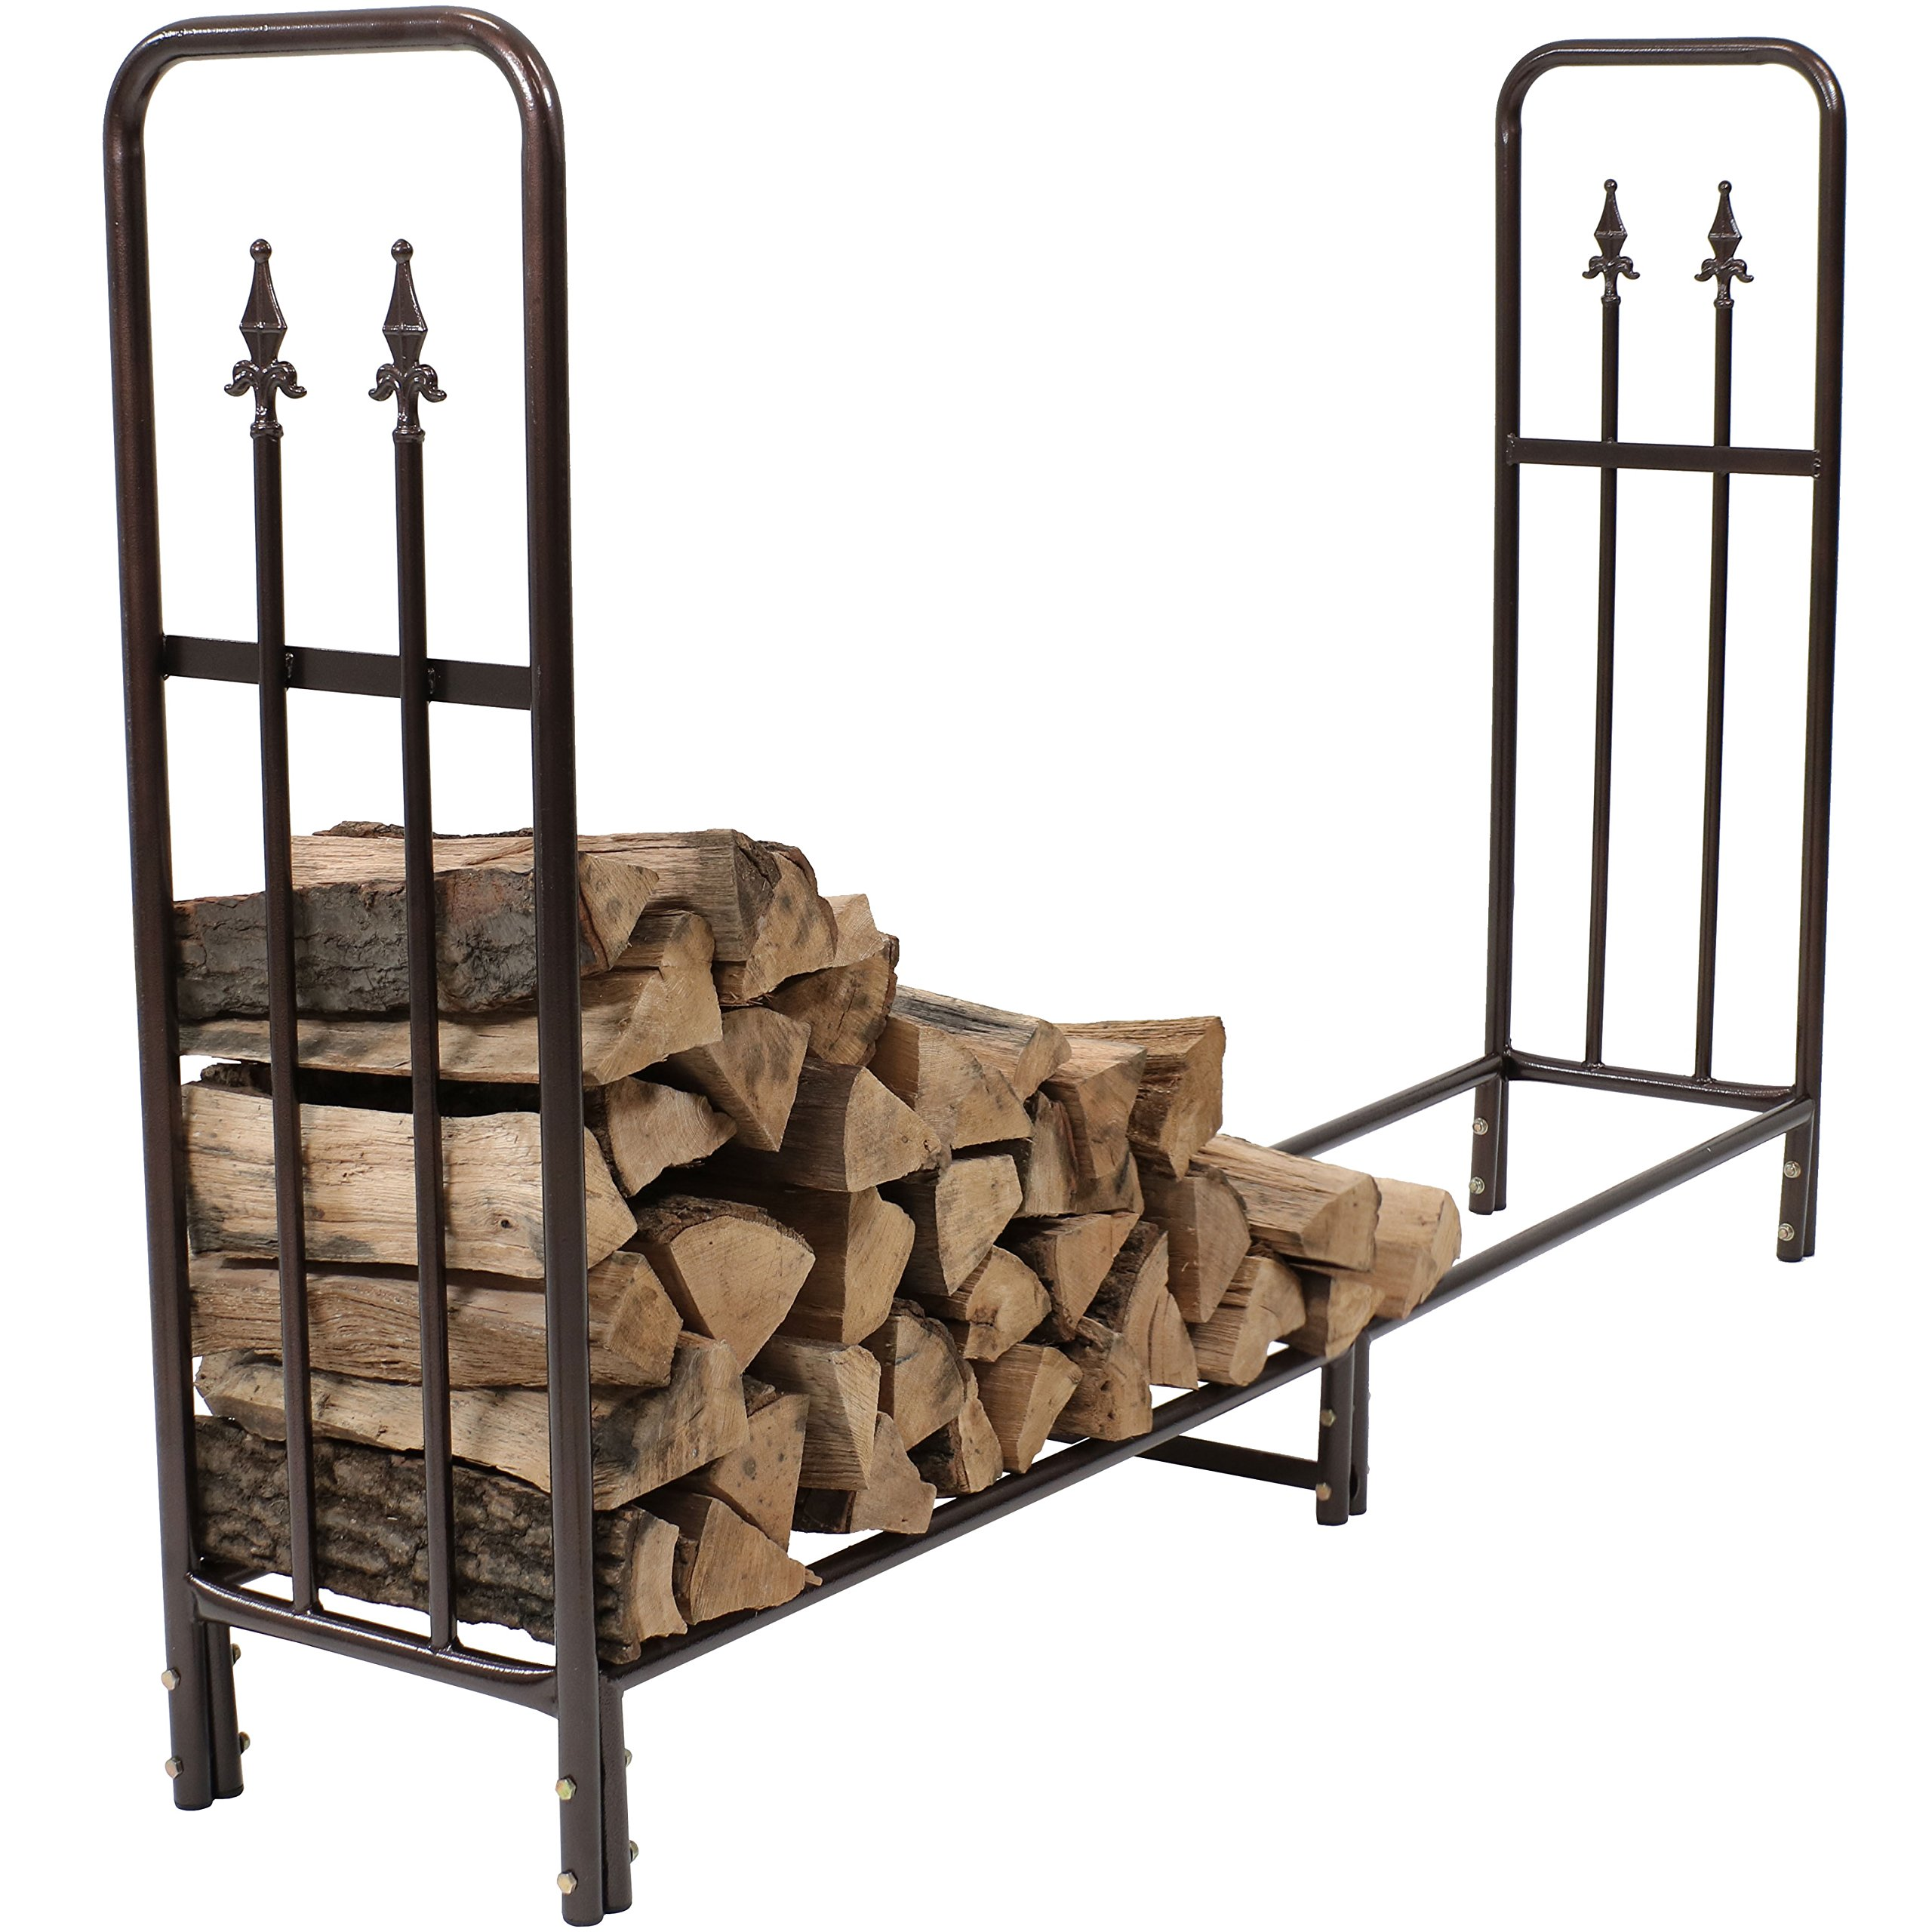 Sunnydaze 6-Foot Firewood Log Rack, Indoor/Outdoor Decorative Wood Storage Holder for Fireplace, Bronze by Sunnydaze Decor